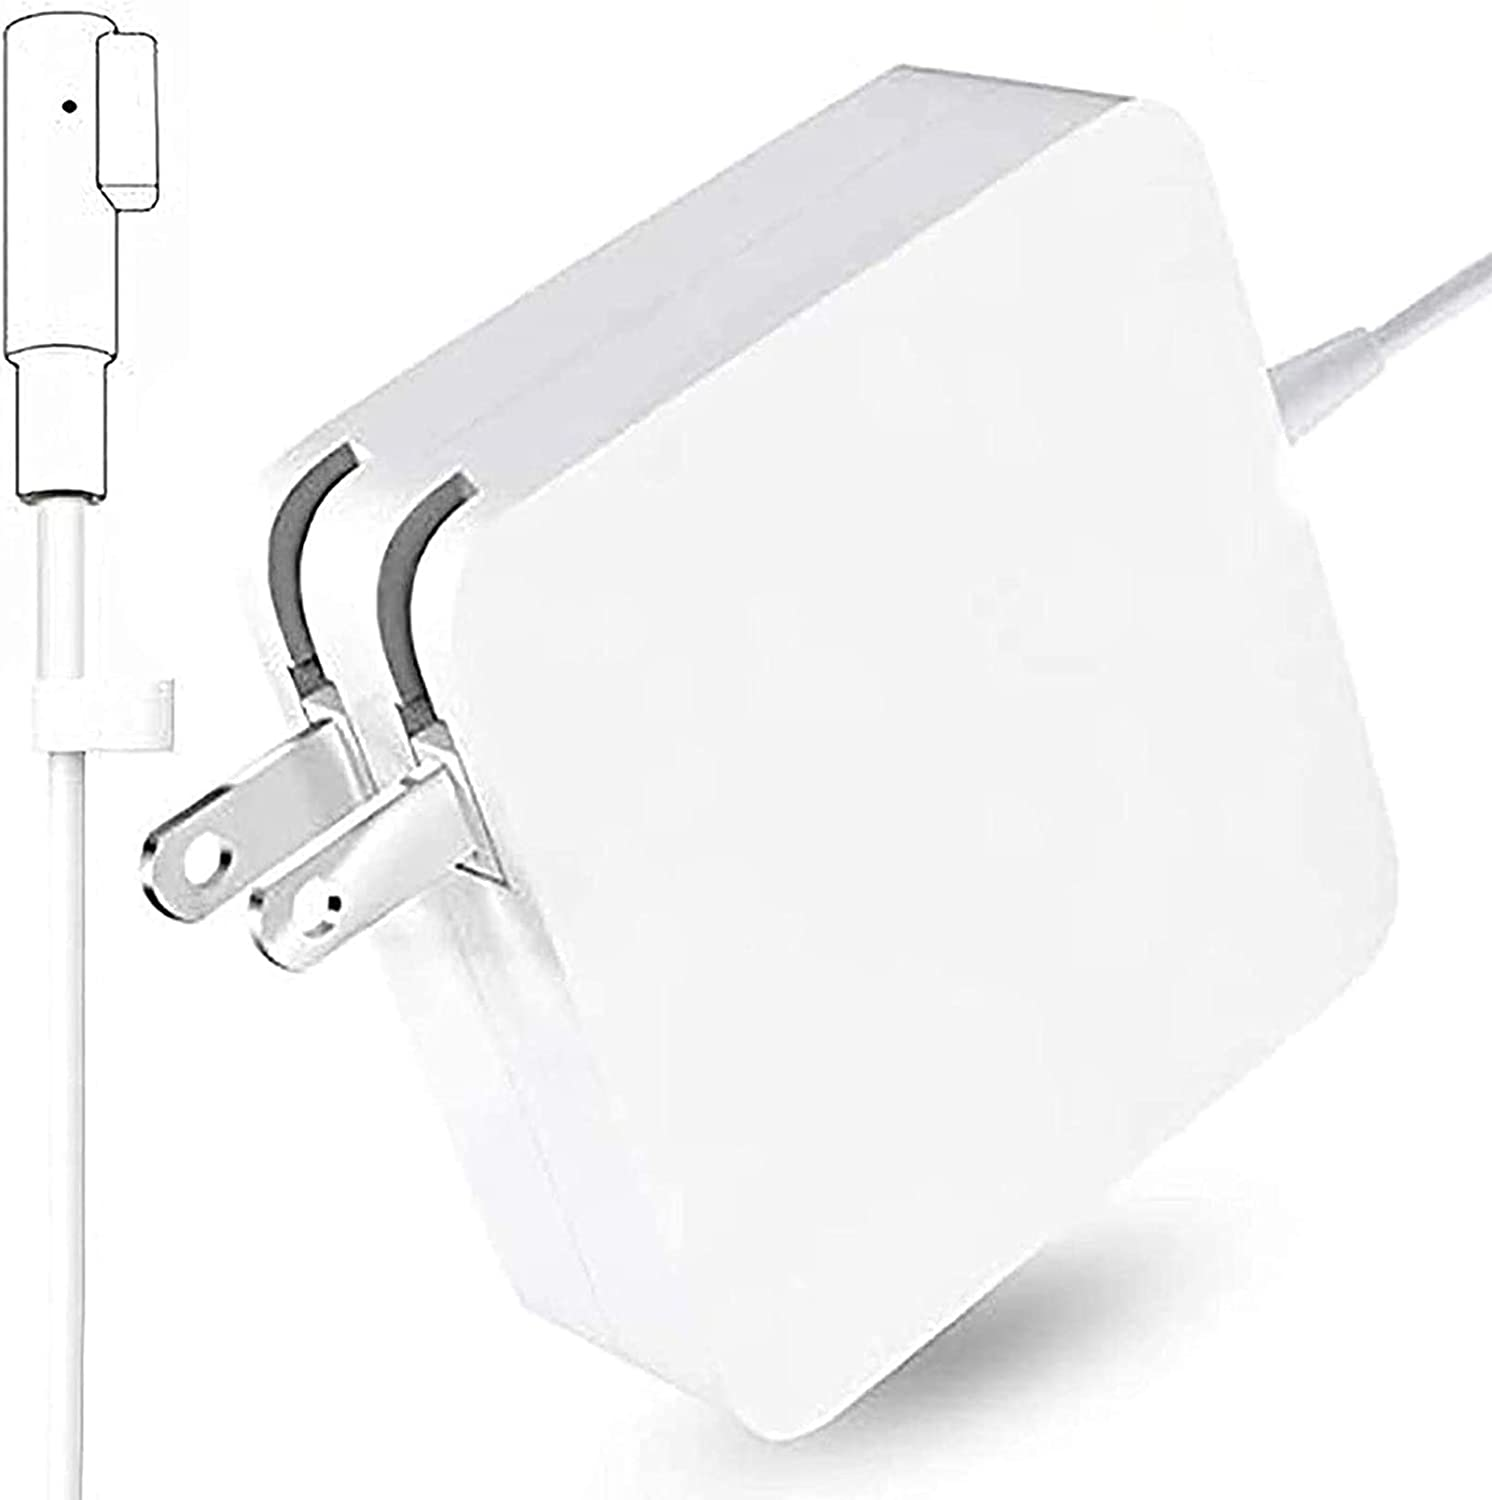 Mac Book Pro Charger, AC 60W Power Adapter Magnetic L-Tip Charger for Mac Book Pro 13-inch(Before Mid 2012 Models) (60L Tip)